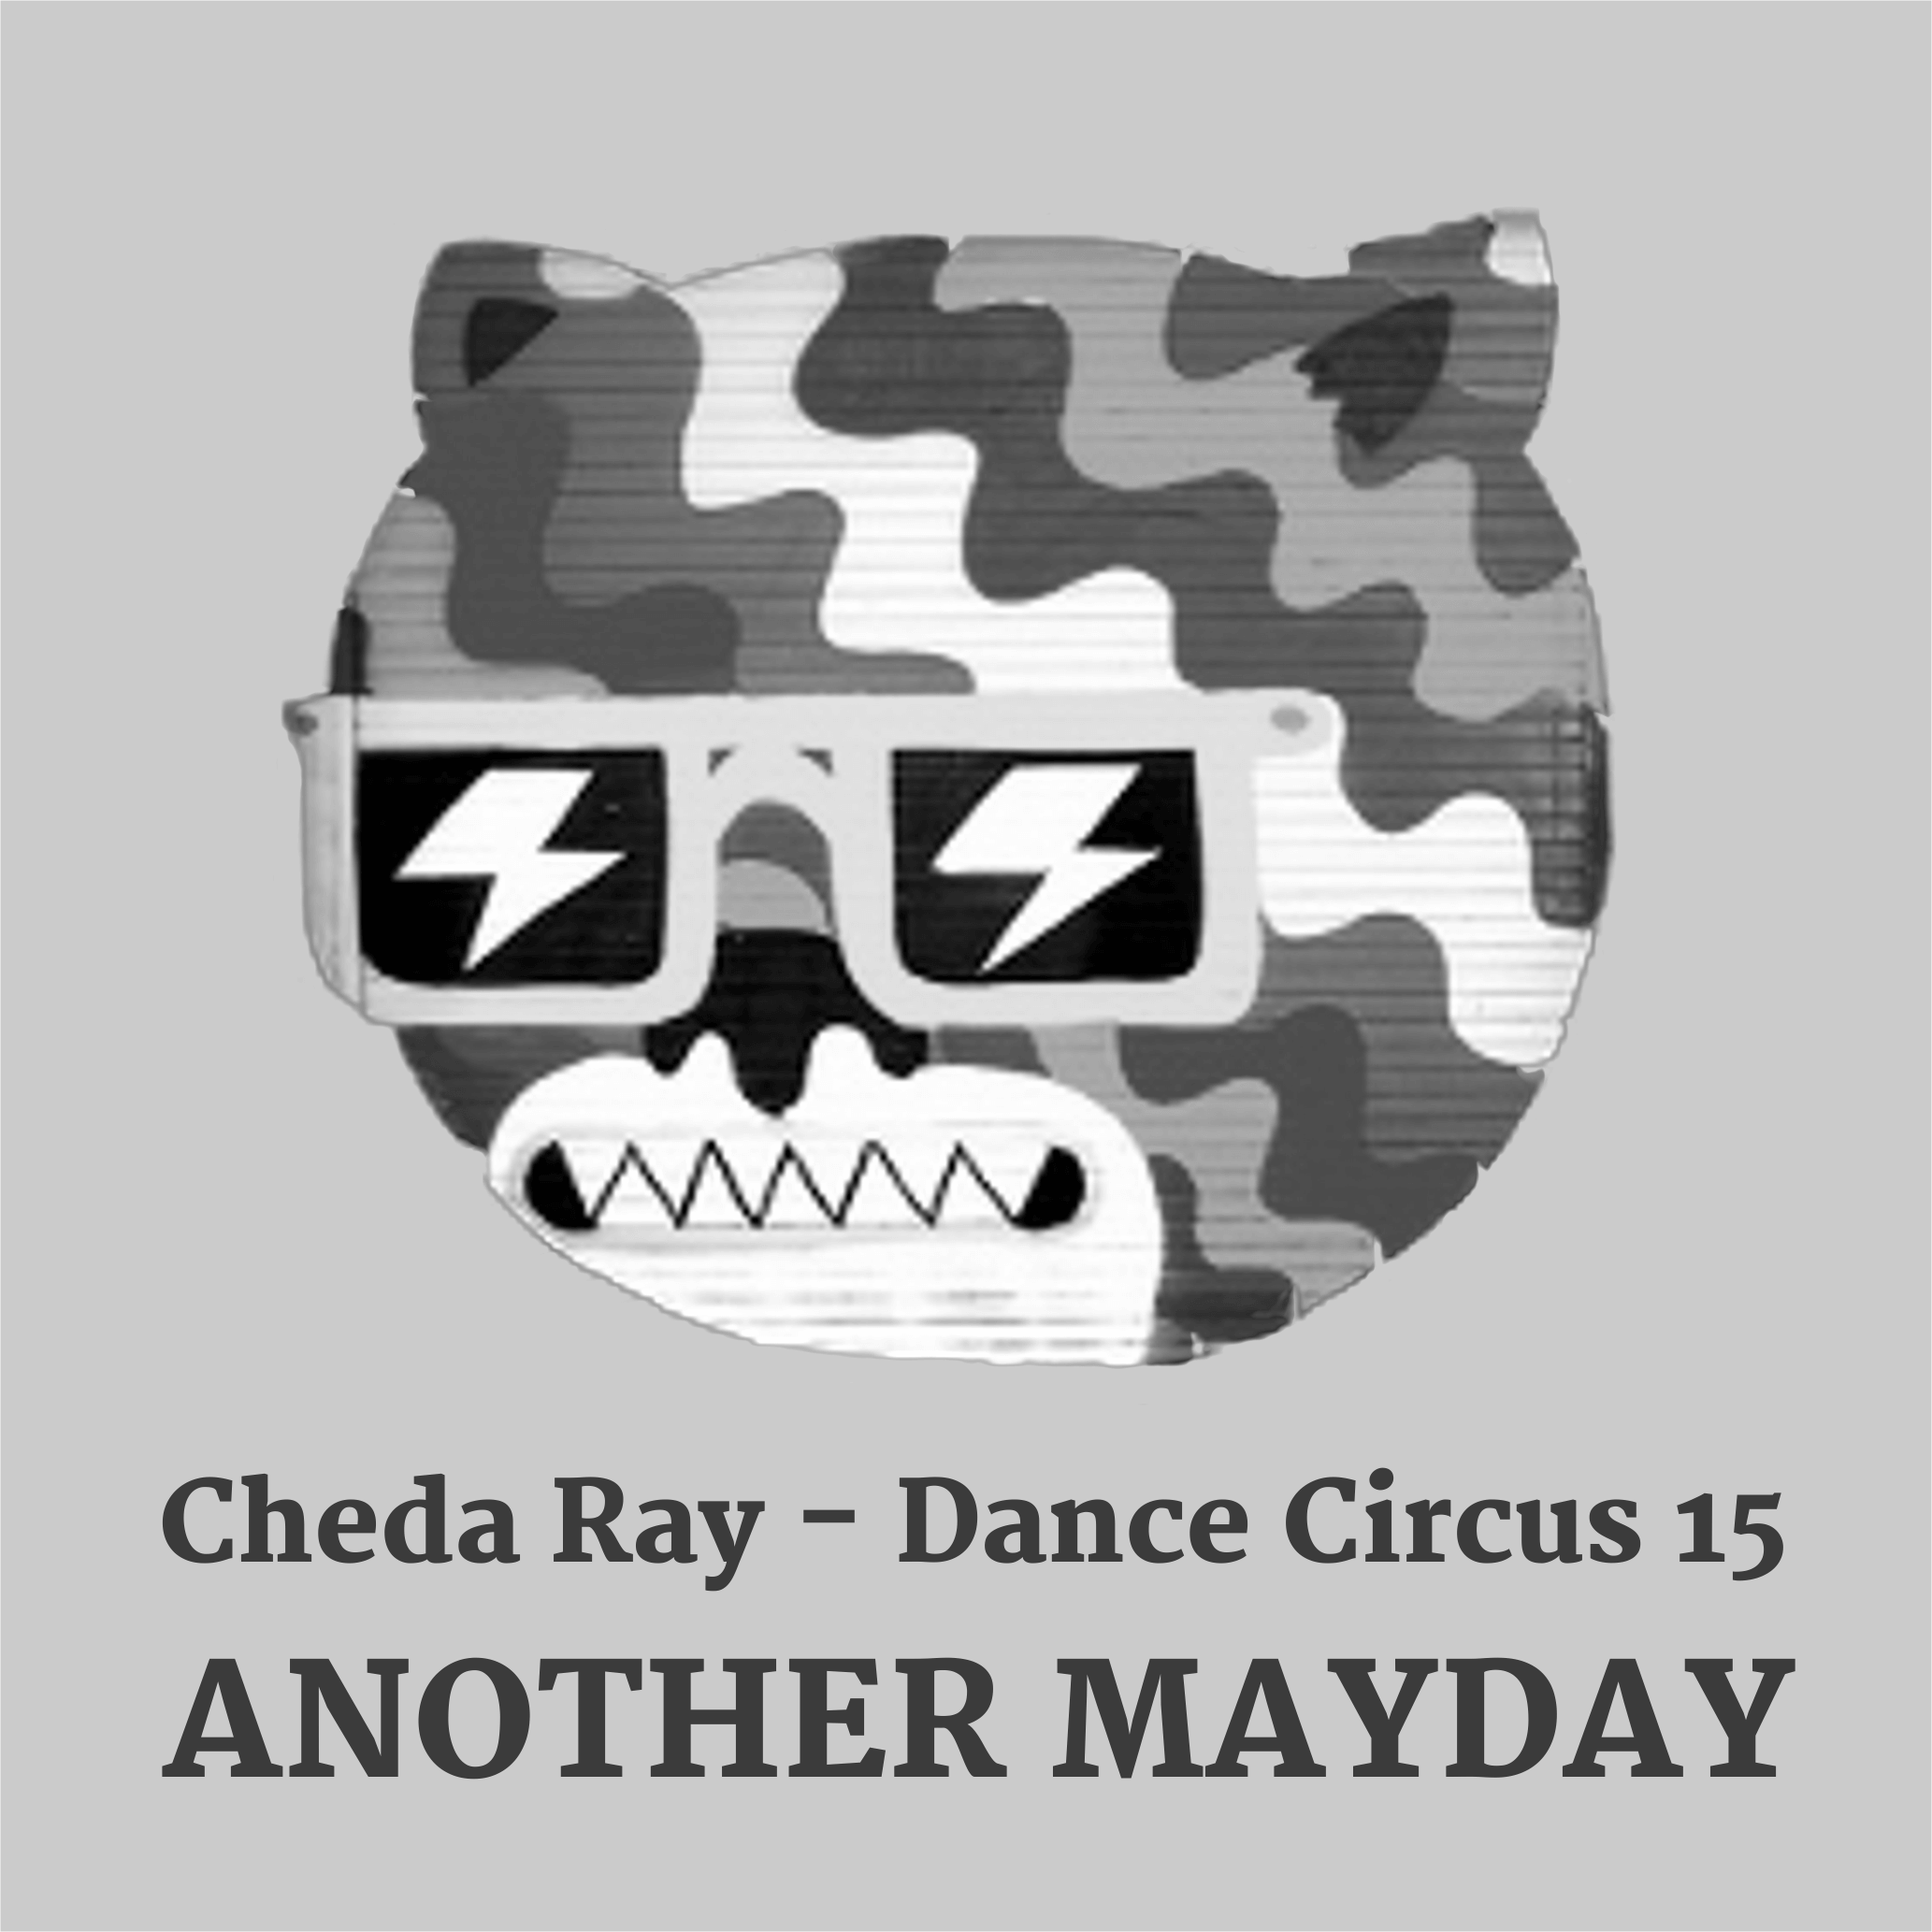 Dance Circus 15 - Another Mayday